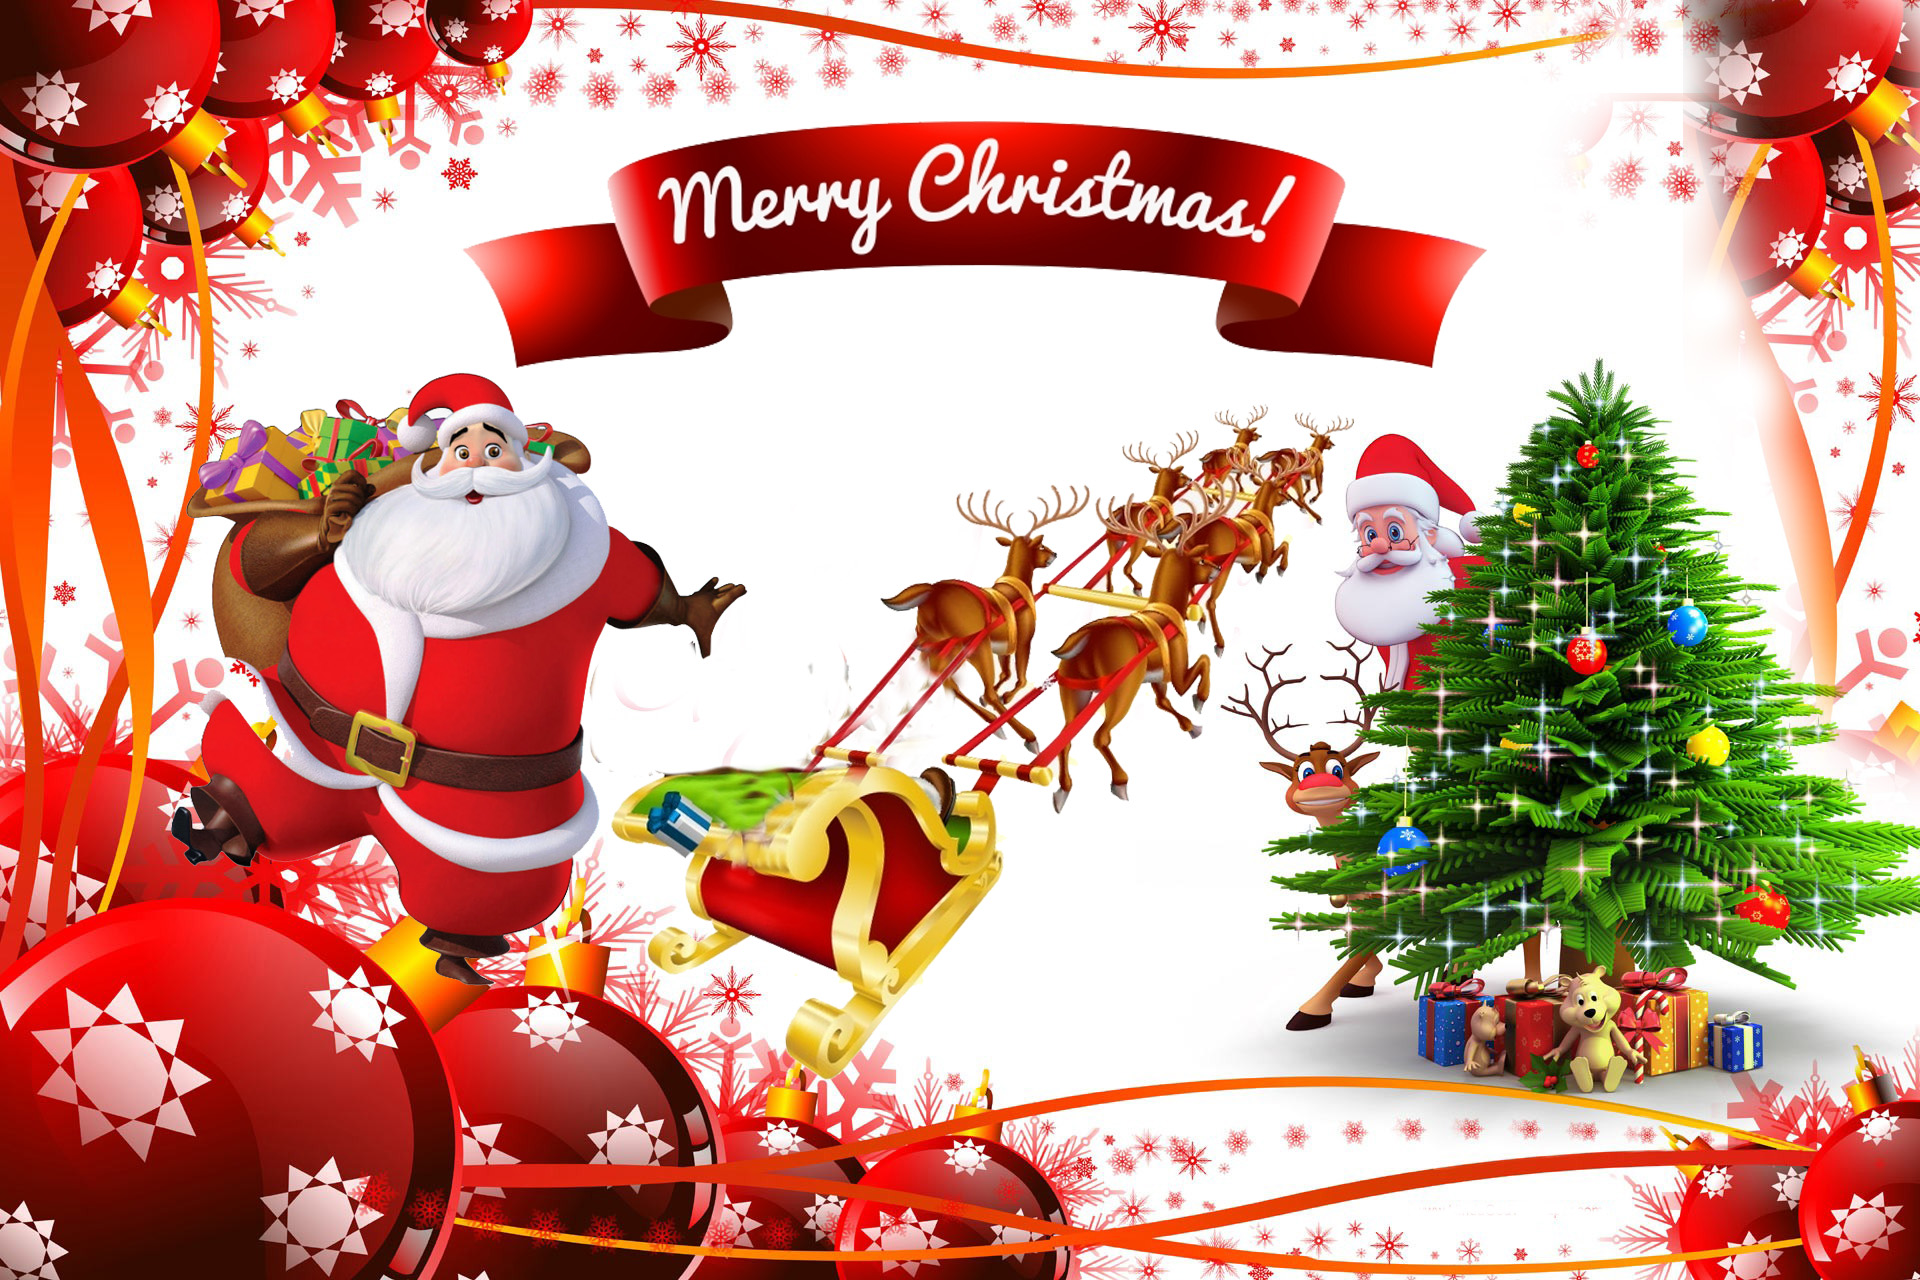 Importance of Merry Christmas Day Merry Christmas 2019 Images 1920x1280